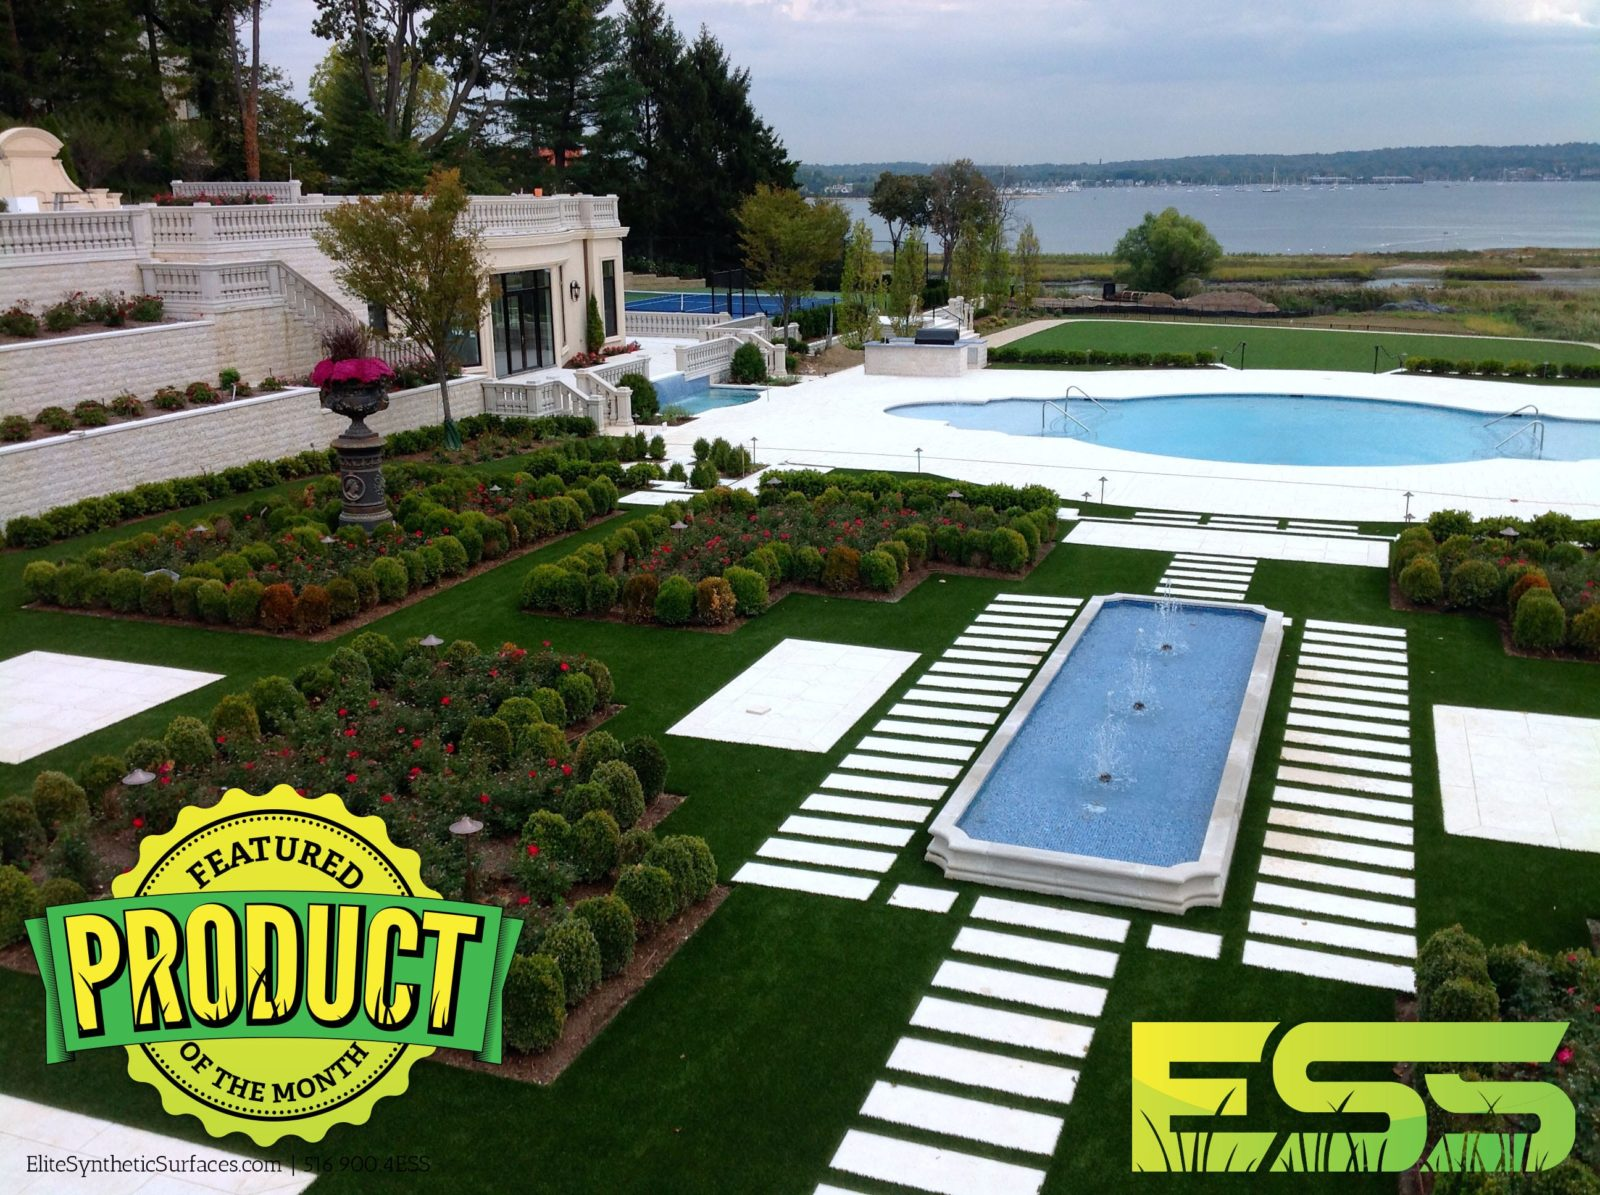 SoftLawn-Synthetic-Grass-Kings-Point-NY-April-2015